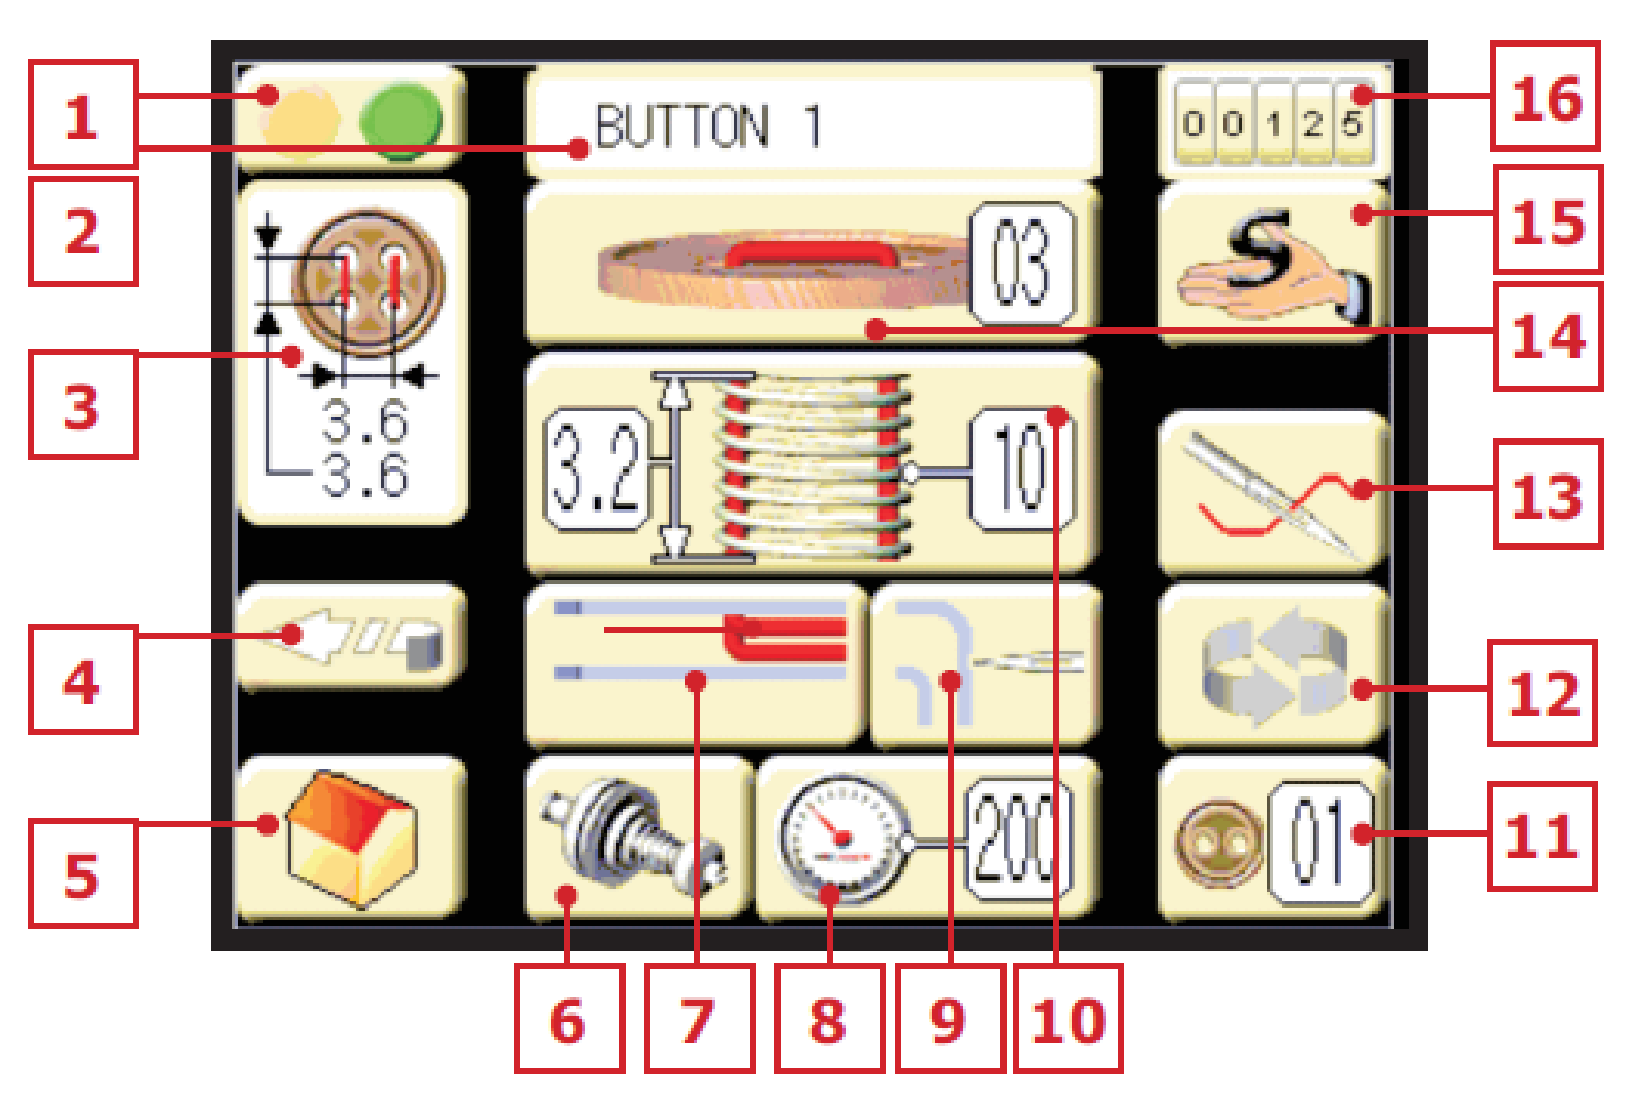 EBSMarkII_TouchPanel_Features@3x.png